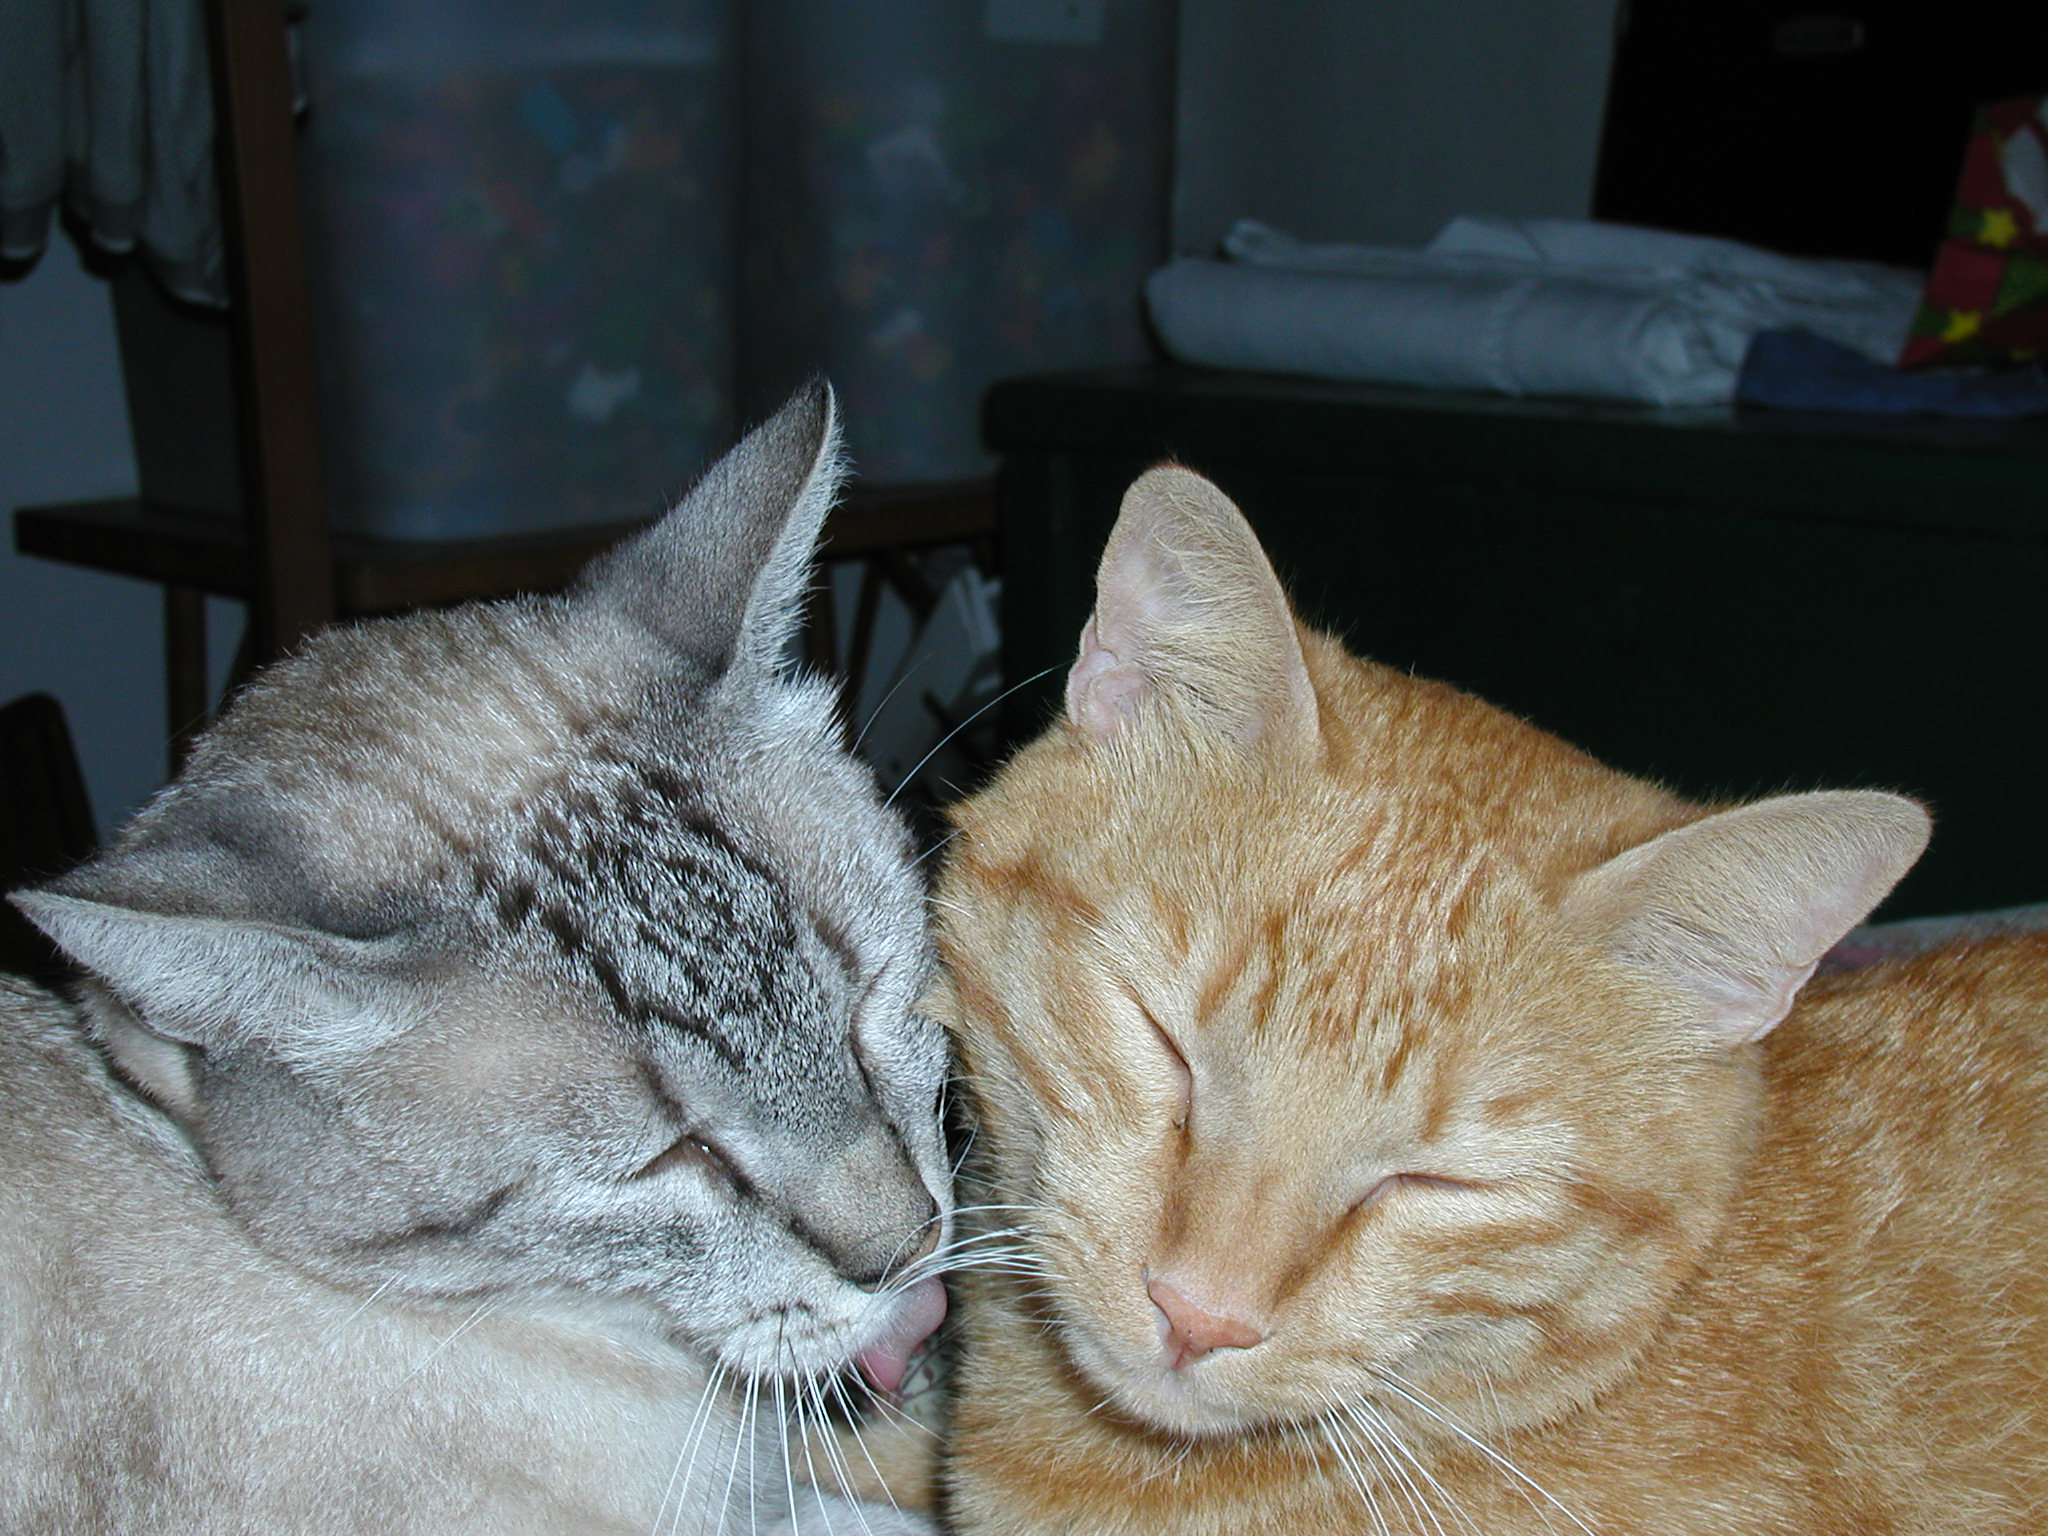 Two cats with heads close together. One is sleeping and the other is licking the sleeping cat.